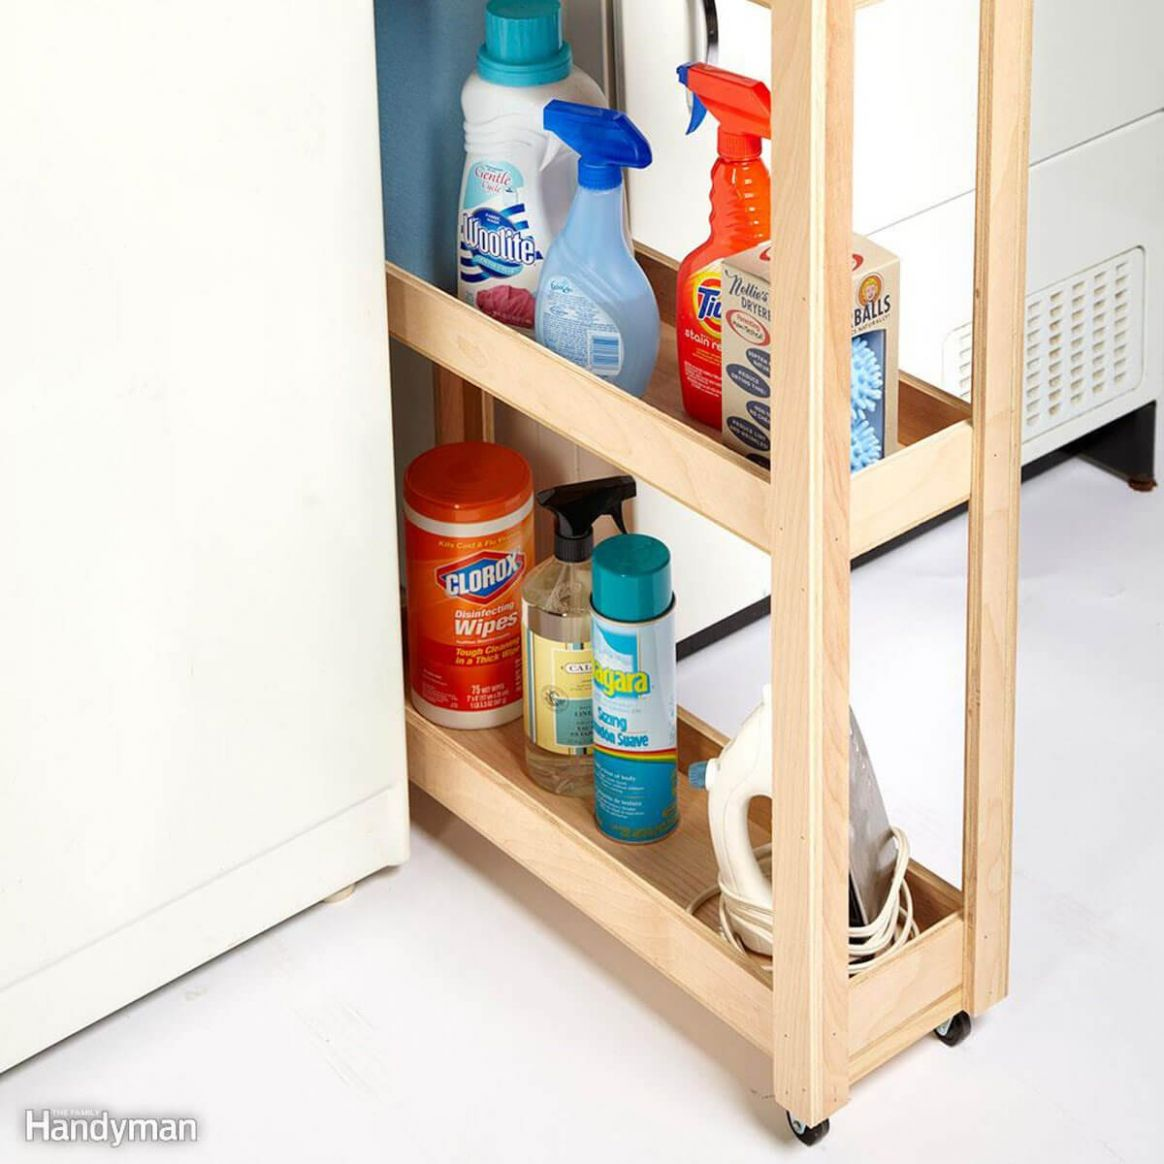 10 Best Laundry Room Organization Tips! | The Family Handyman - laundry room organization ideas diy